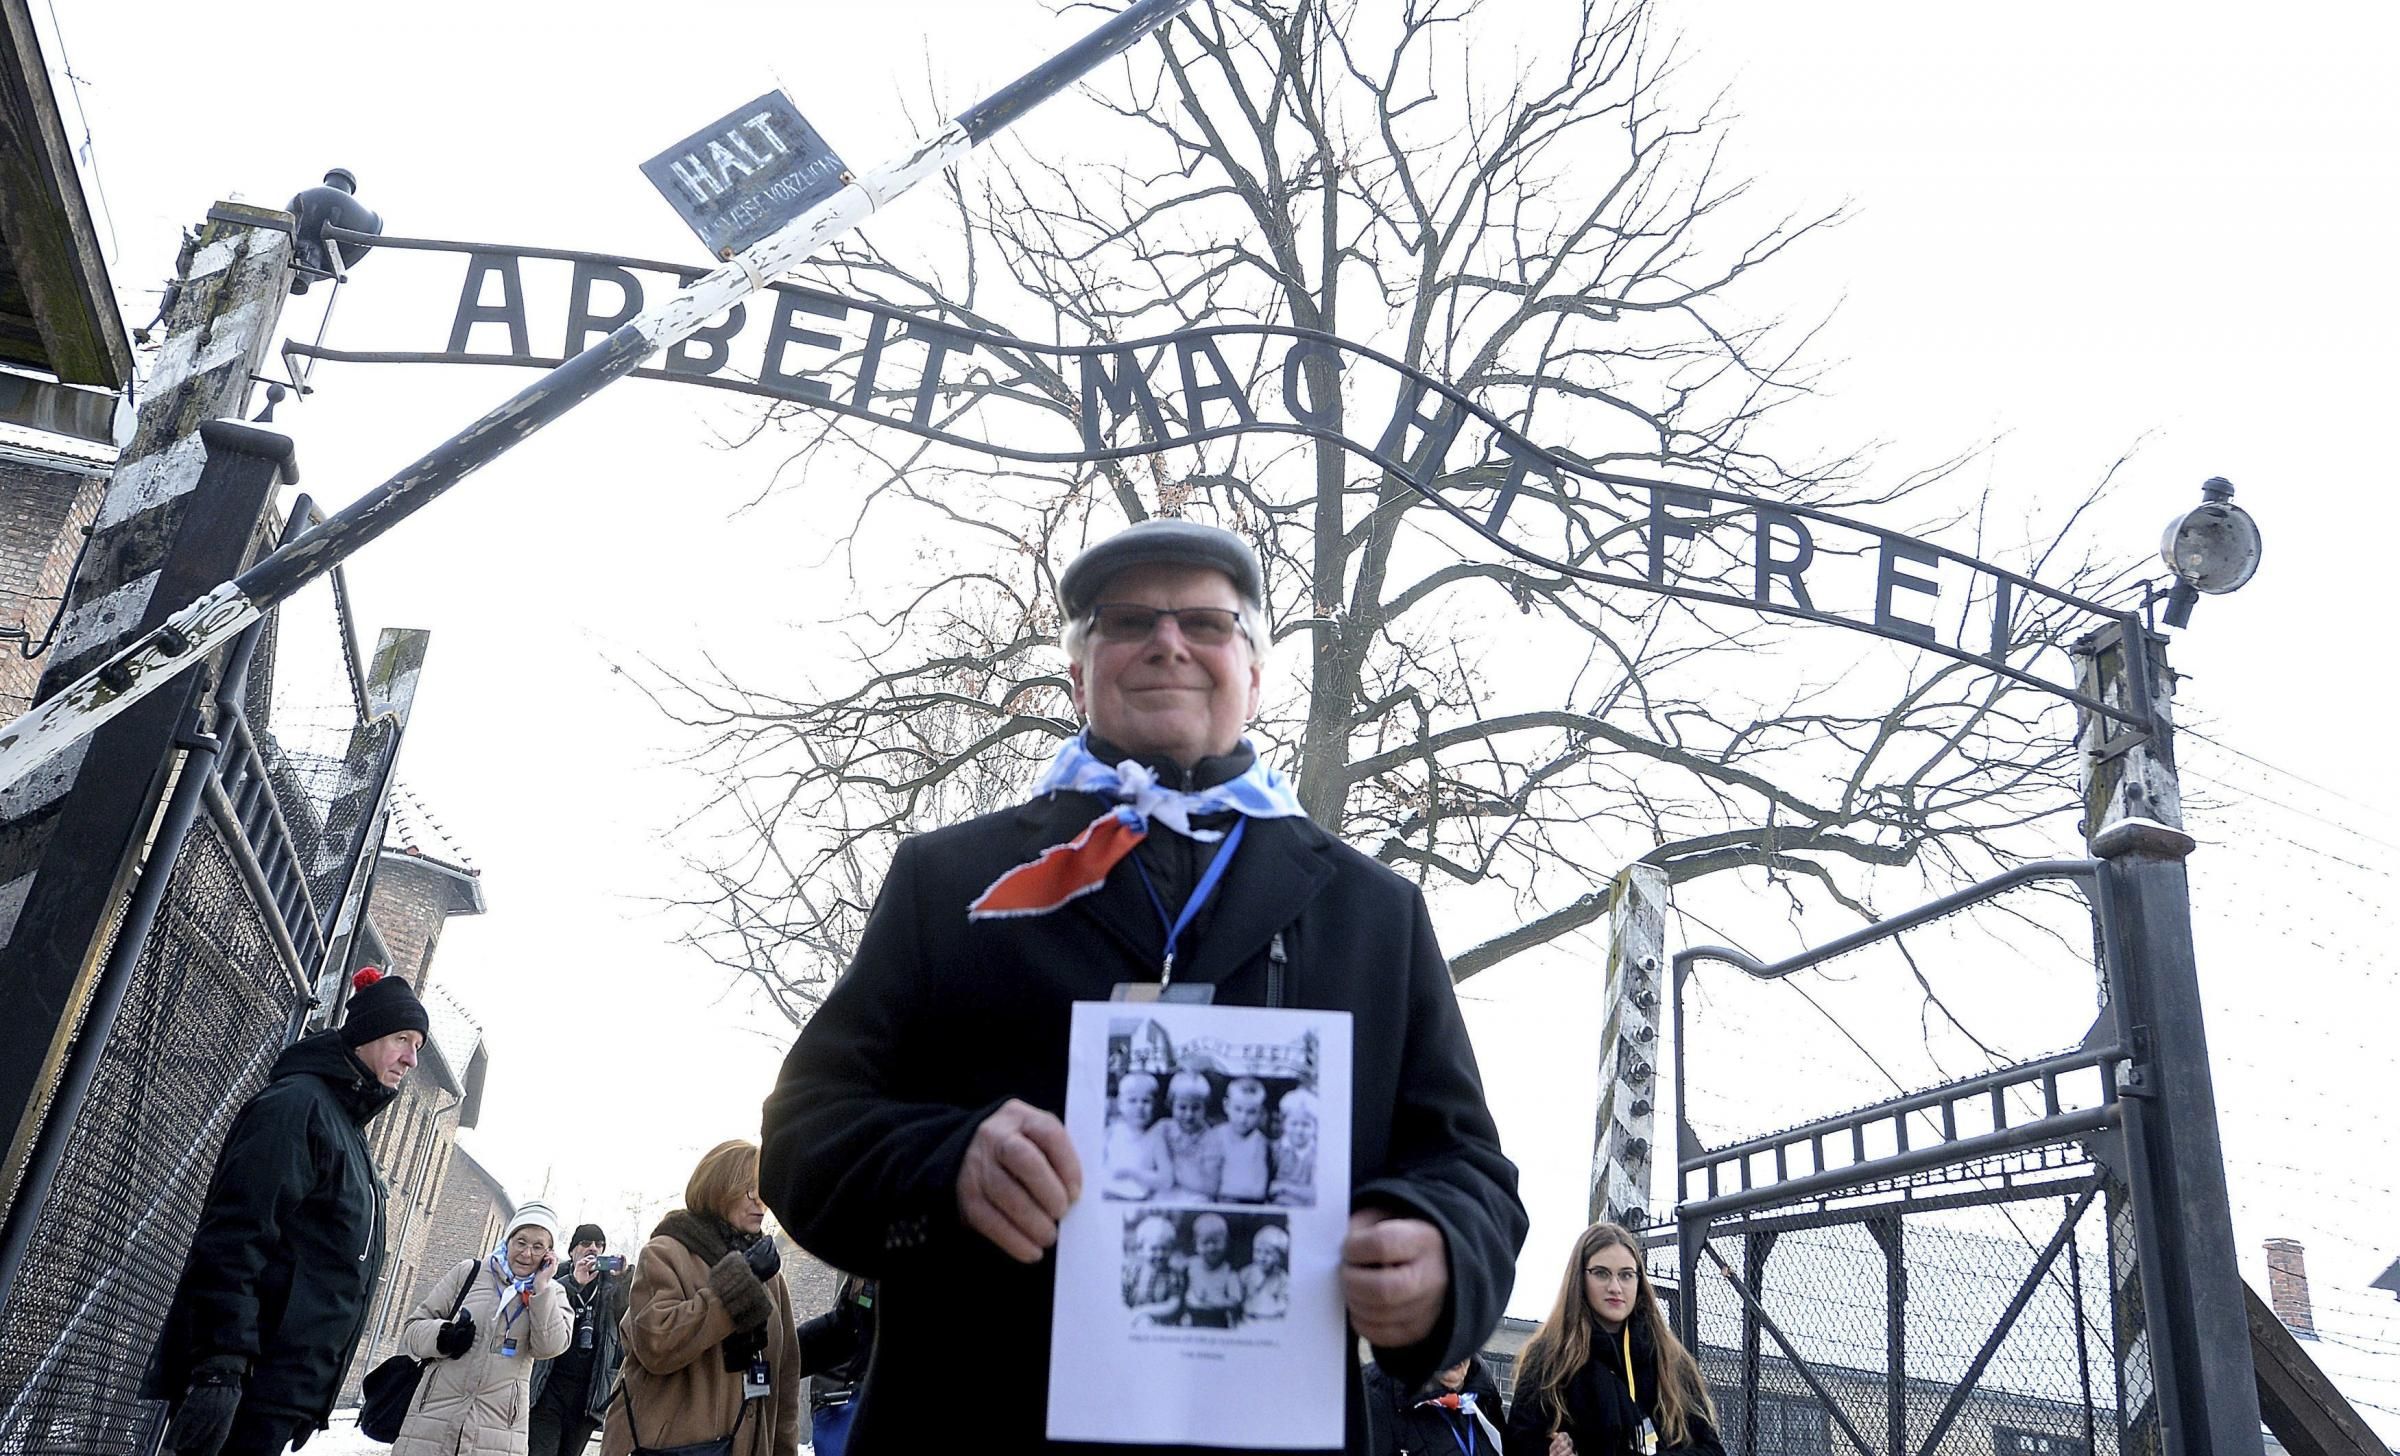 A survivor holds a poster at the former Nazi German concentration and extermination camp Auschwitz, as he attends ceremonies marking the 74th anniversary of the liberation of the camp in Oswiecim, Poland, Sunday, Jan. 27, 2019.(AP/Czarek Sokolowski)